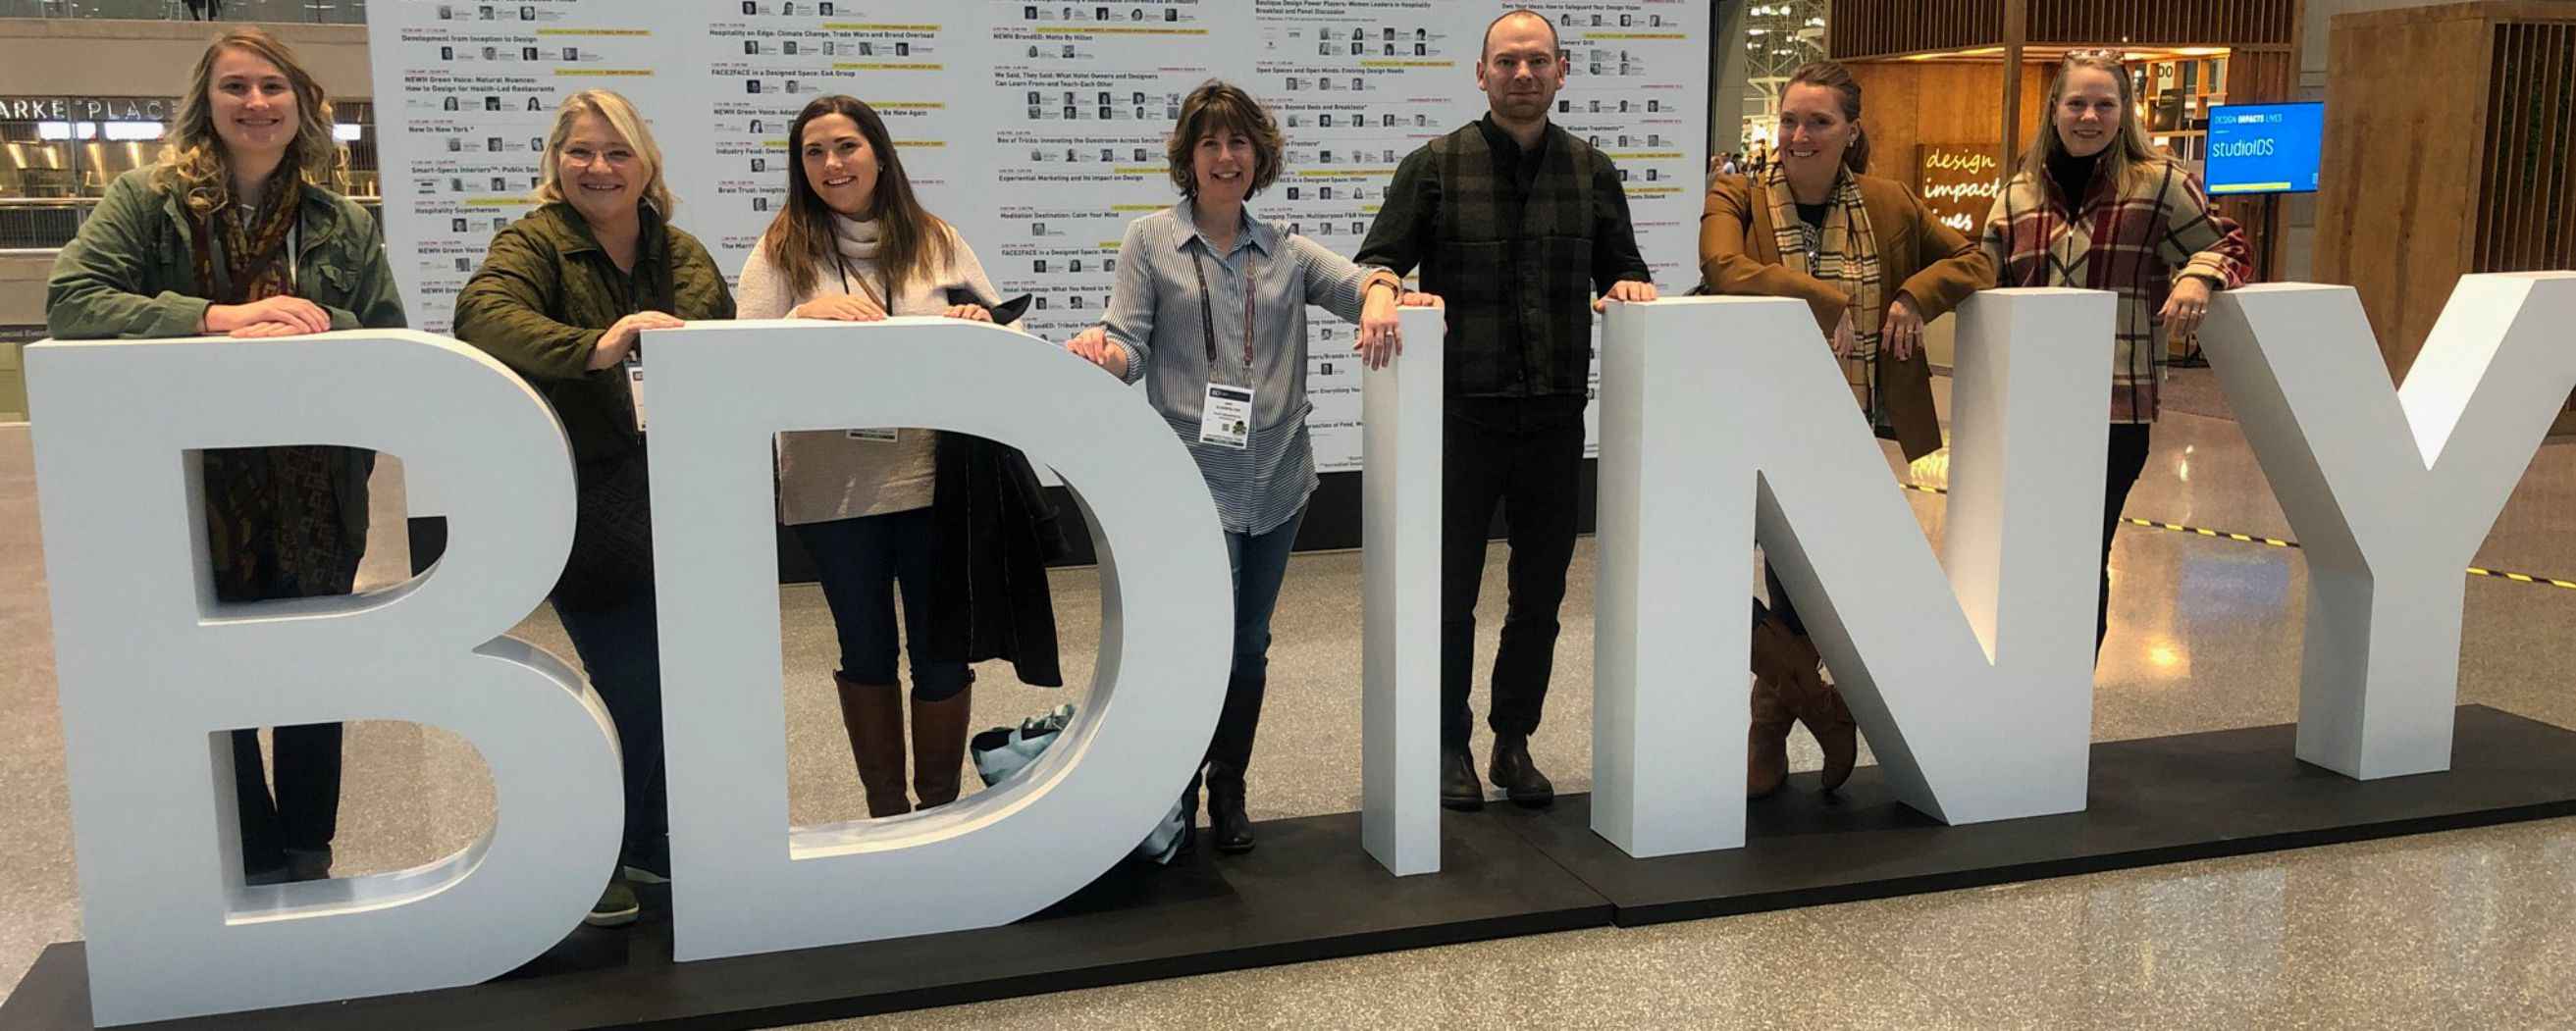 rlps interiors staff behind the BD|NY sign